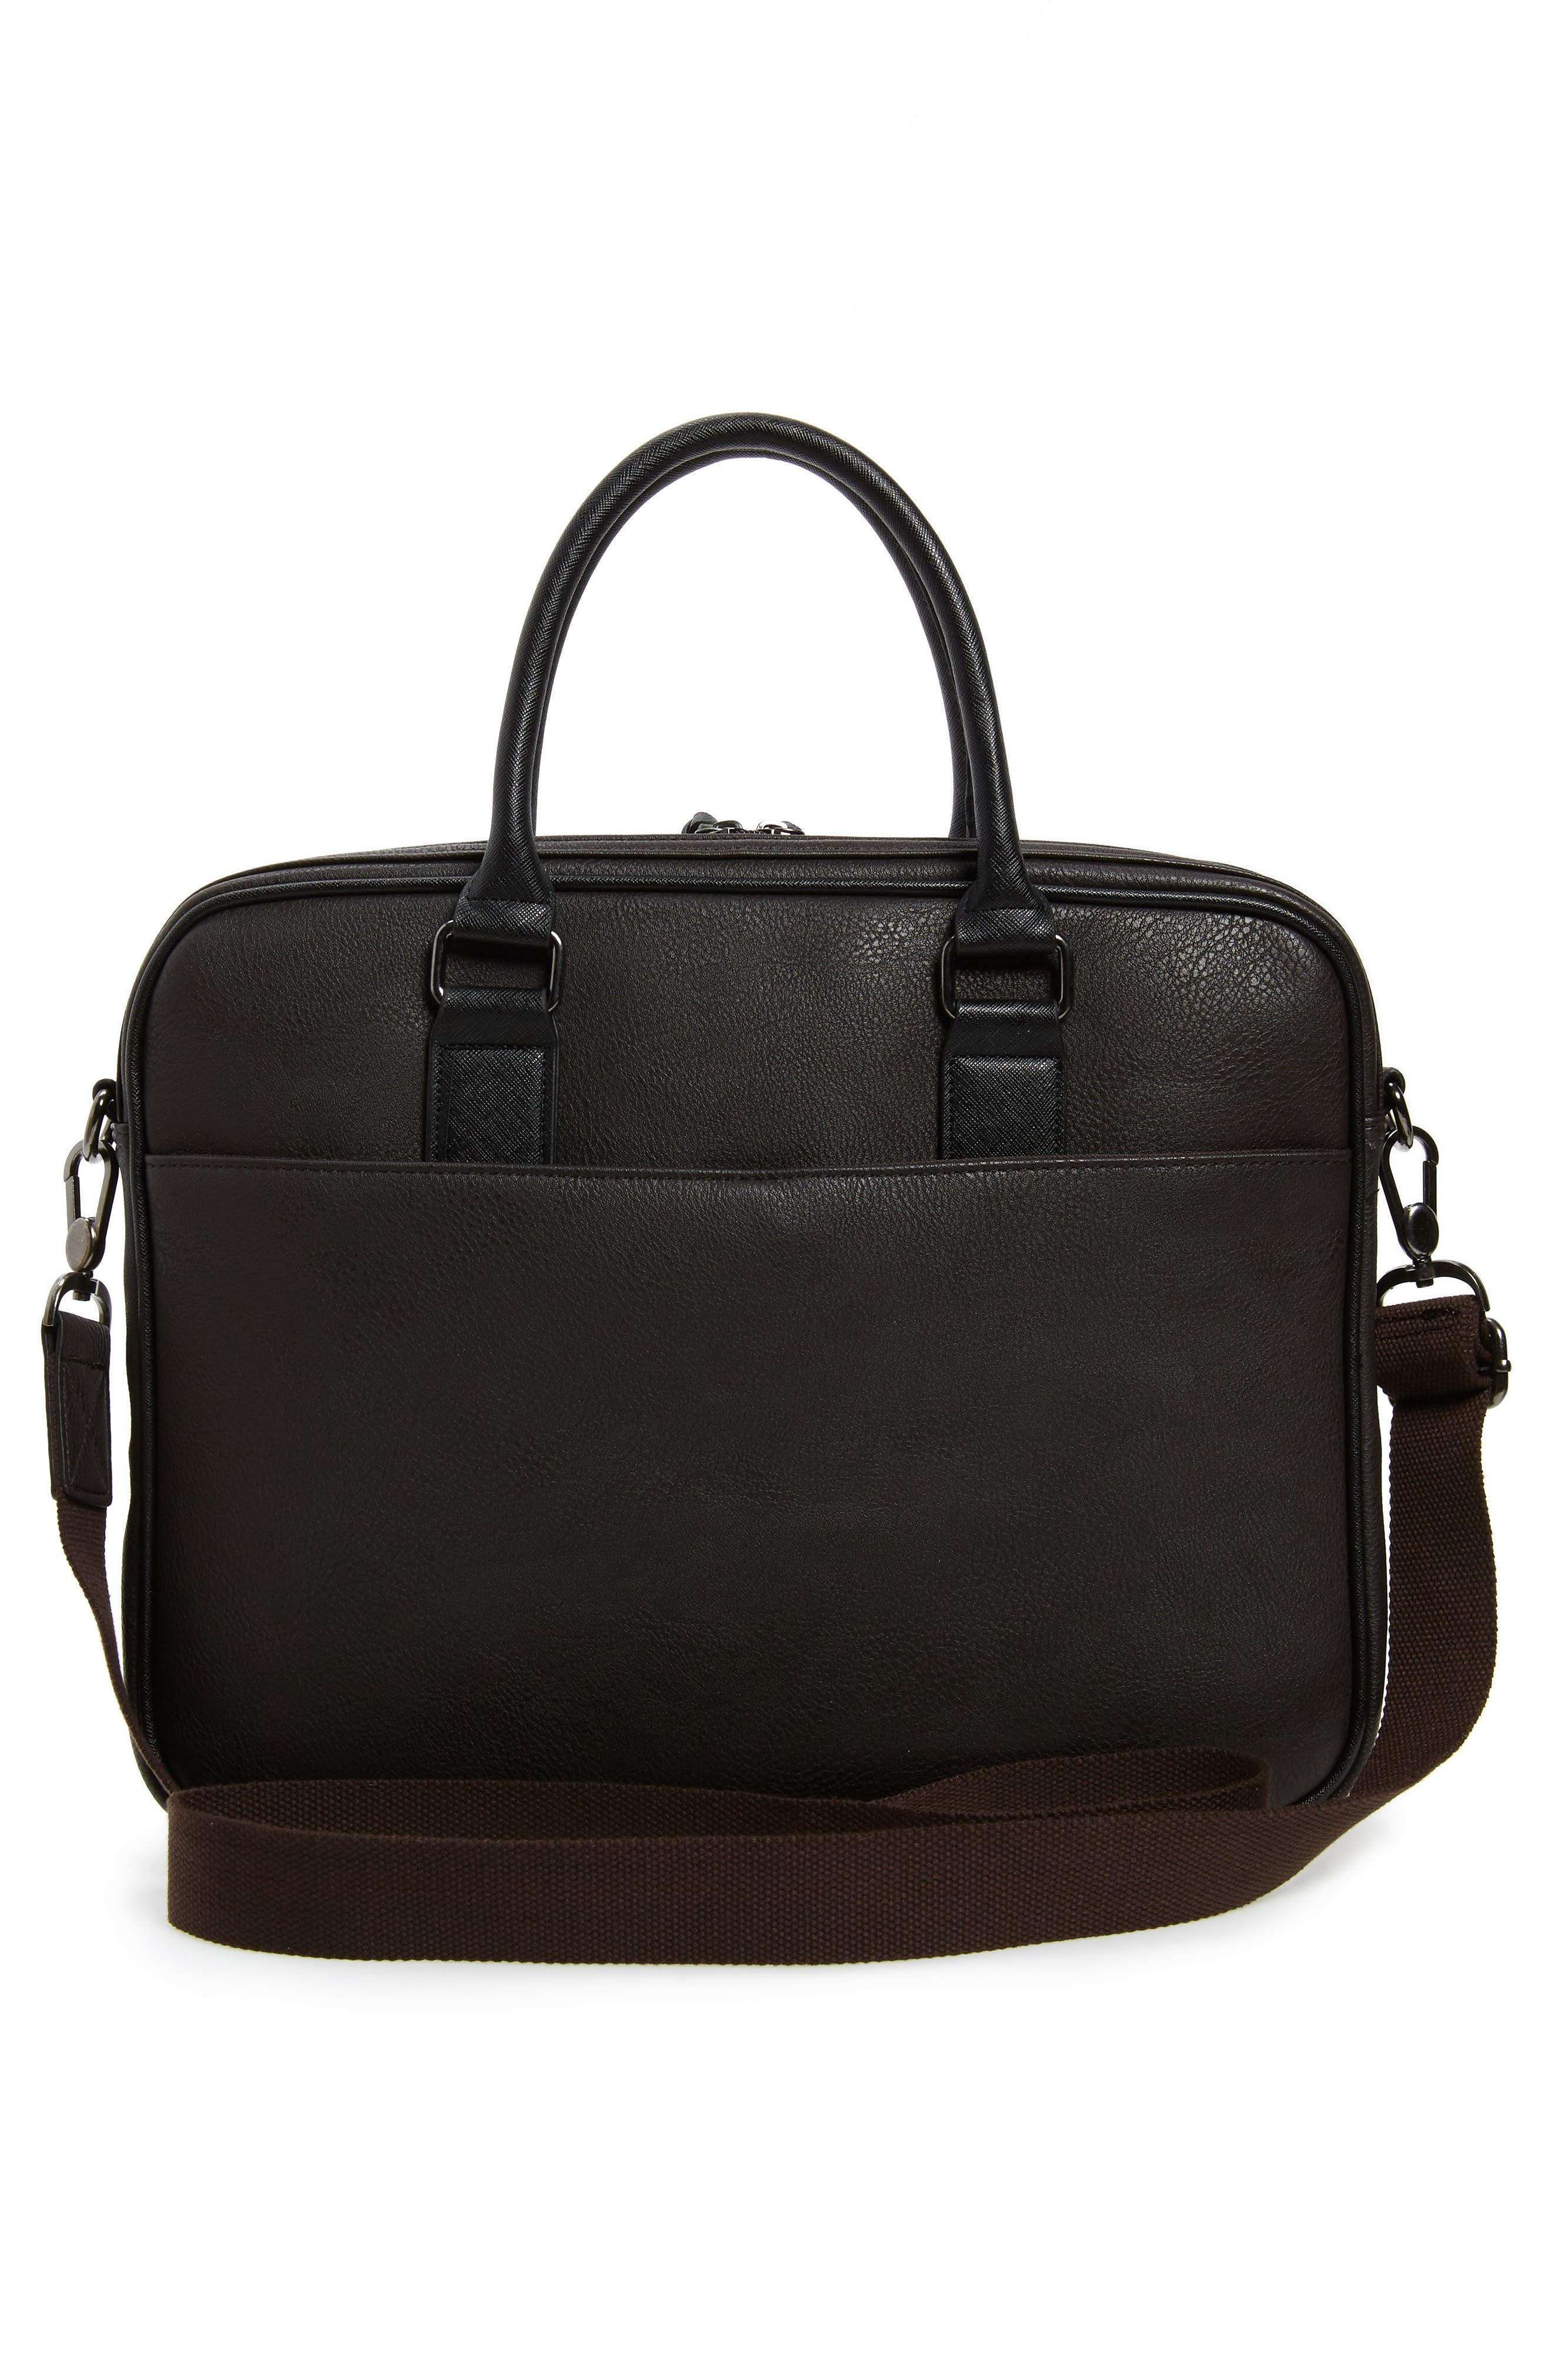 TED BAKER LONDON,                             Merman Faux Leather Briefcase,                             Alternate thumbnail 3, color,                             211